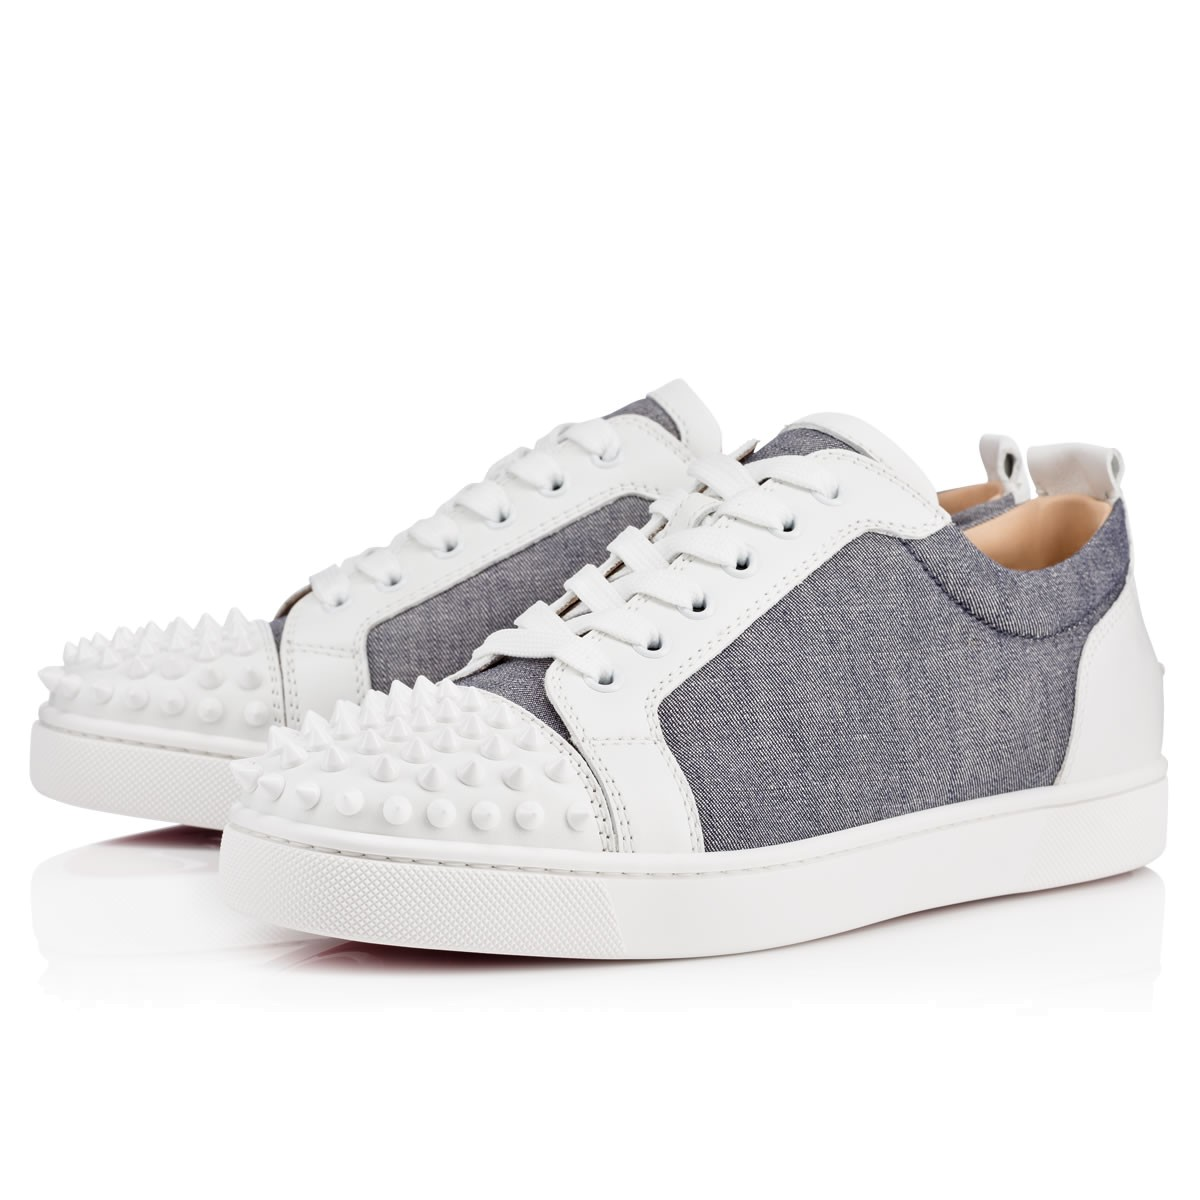 new style 4a8b2 08990 Christian Louboutin men's Junior spike white and grey trainers